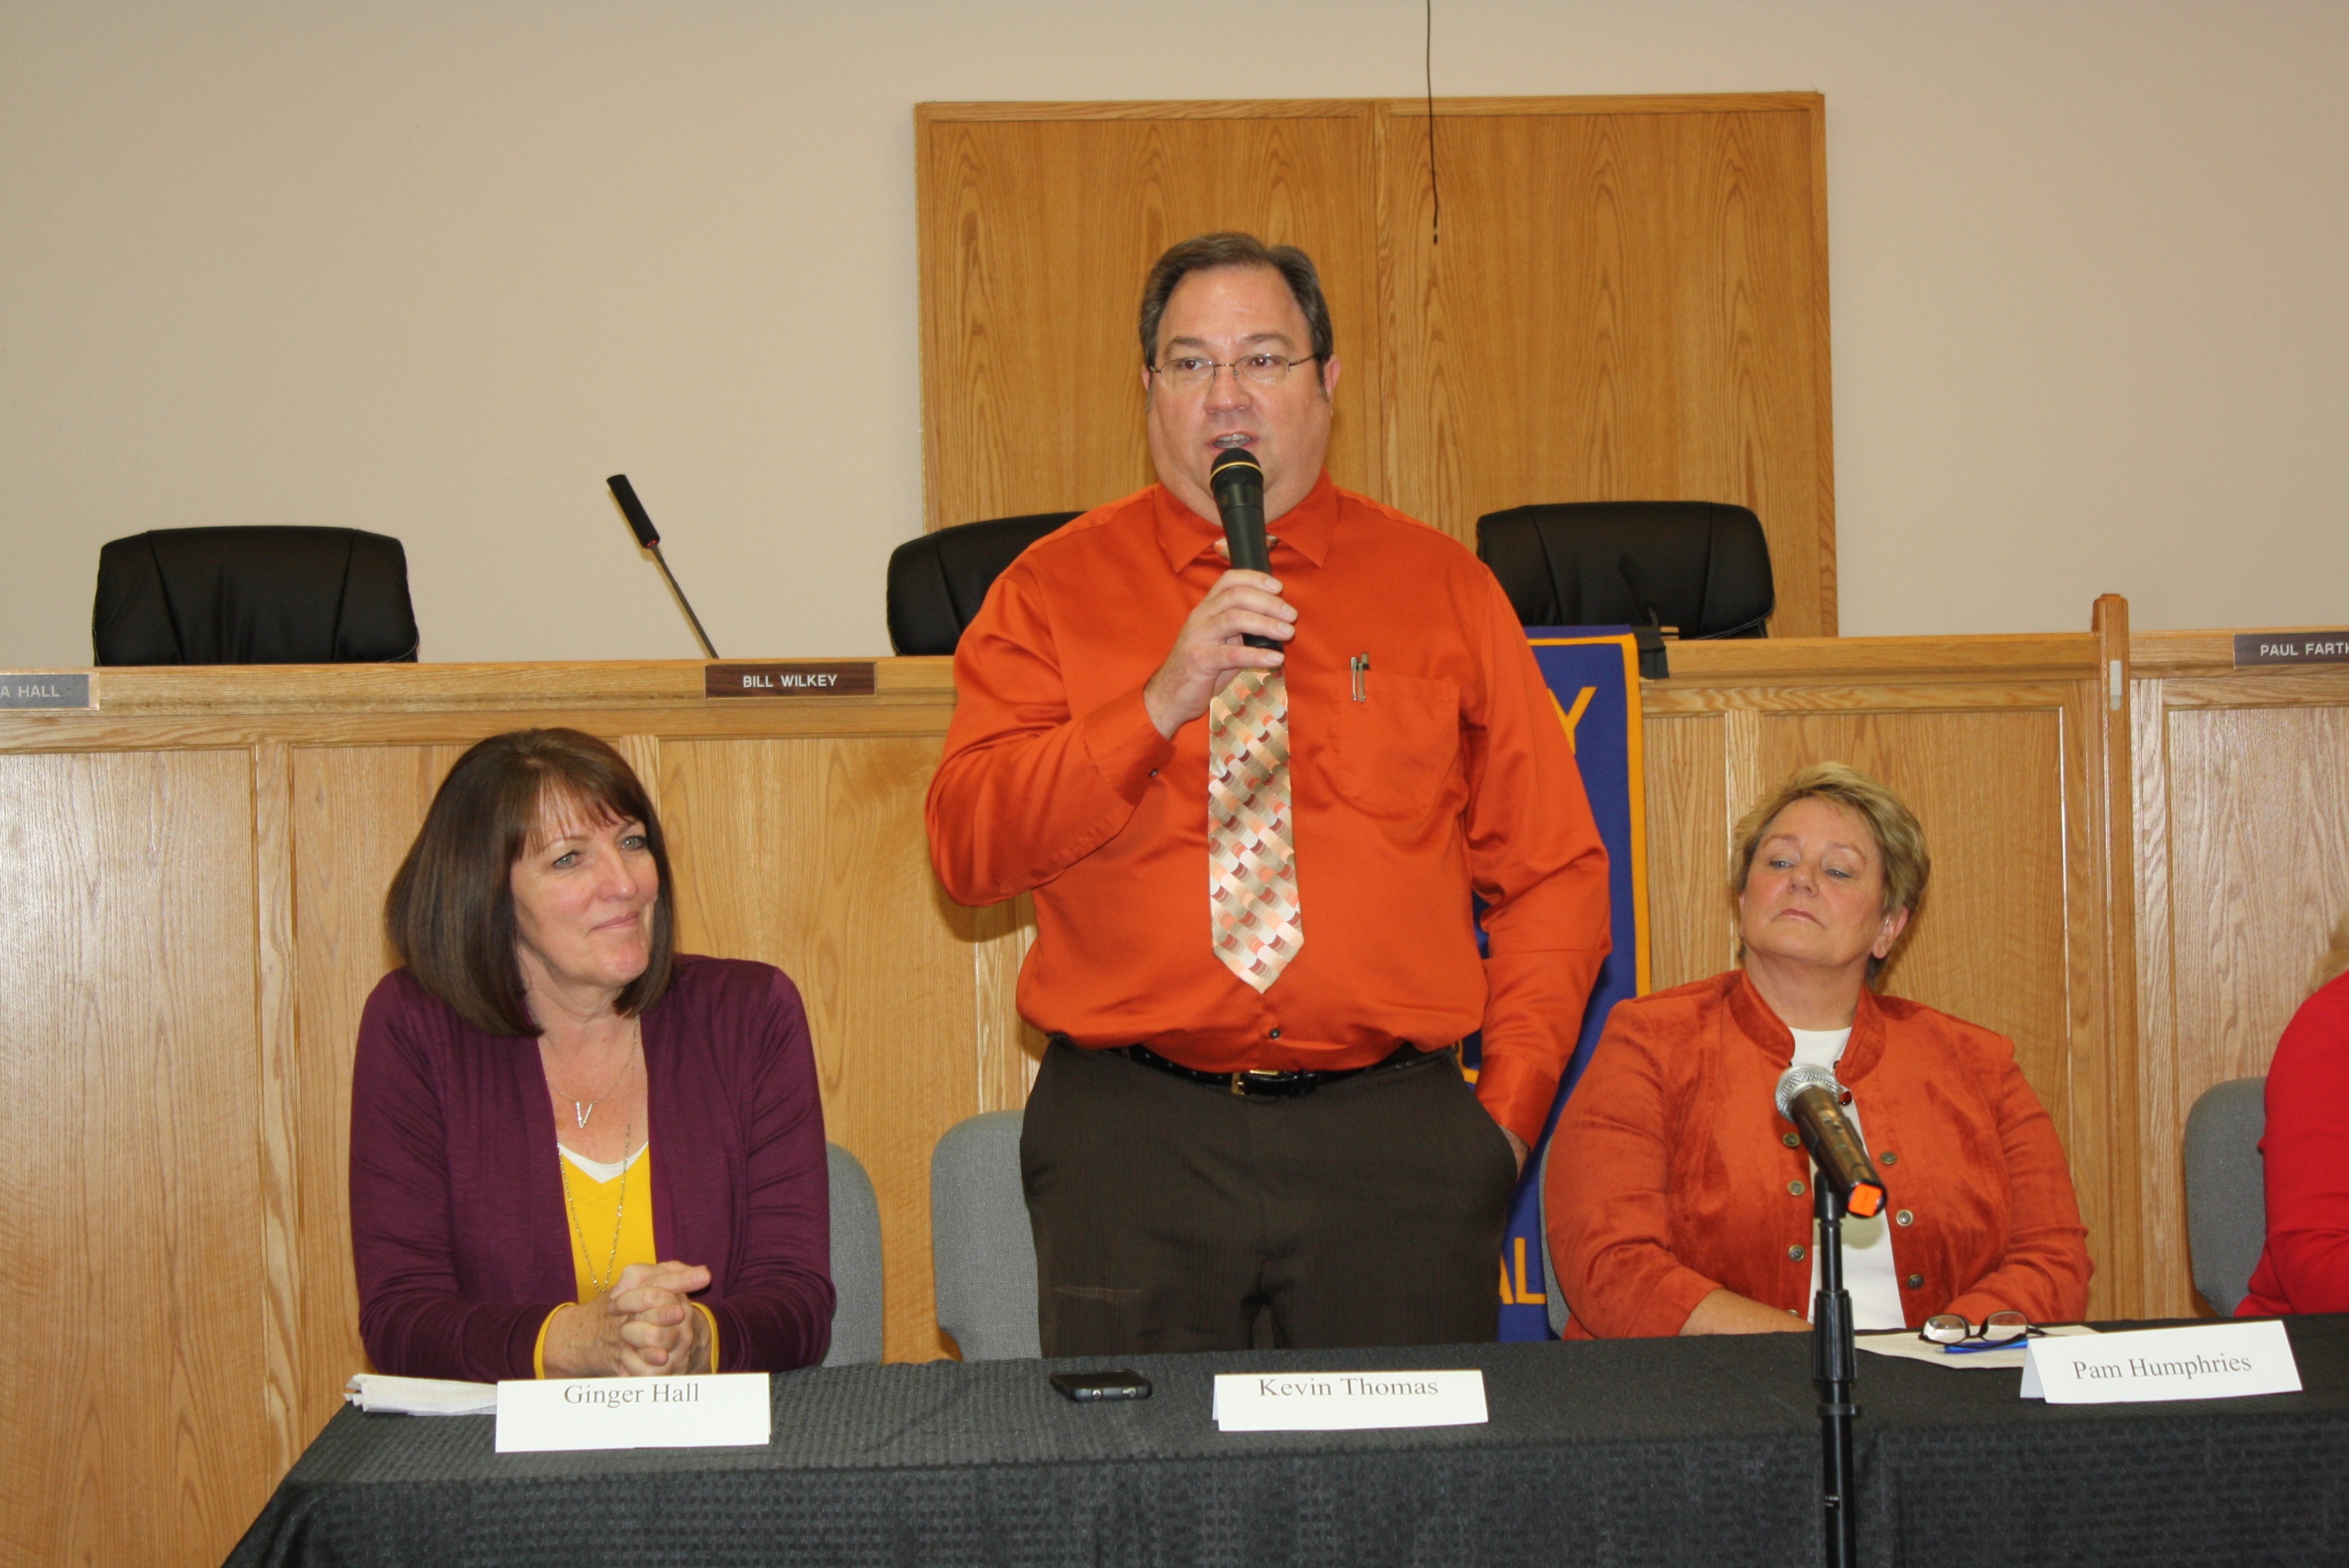 L-R: Ginger Hall, Kevin Thomas, Pam Humphries. Candidate forum put on by the Hurricane Valley Rotary Club; not shown is candidate Cheryl Reeve. Hurricane, Utah, Oct. 29, 2015 | Photo by Reuben Wadsworth, St. George News